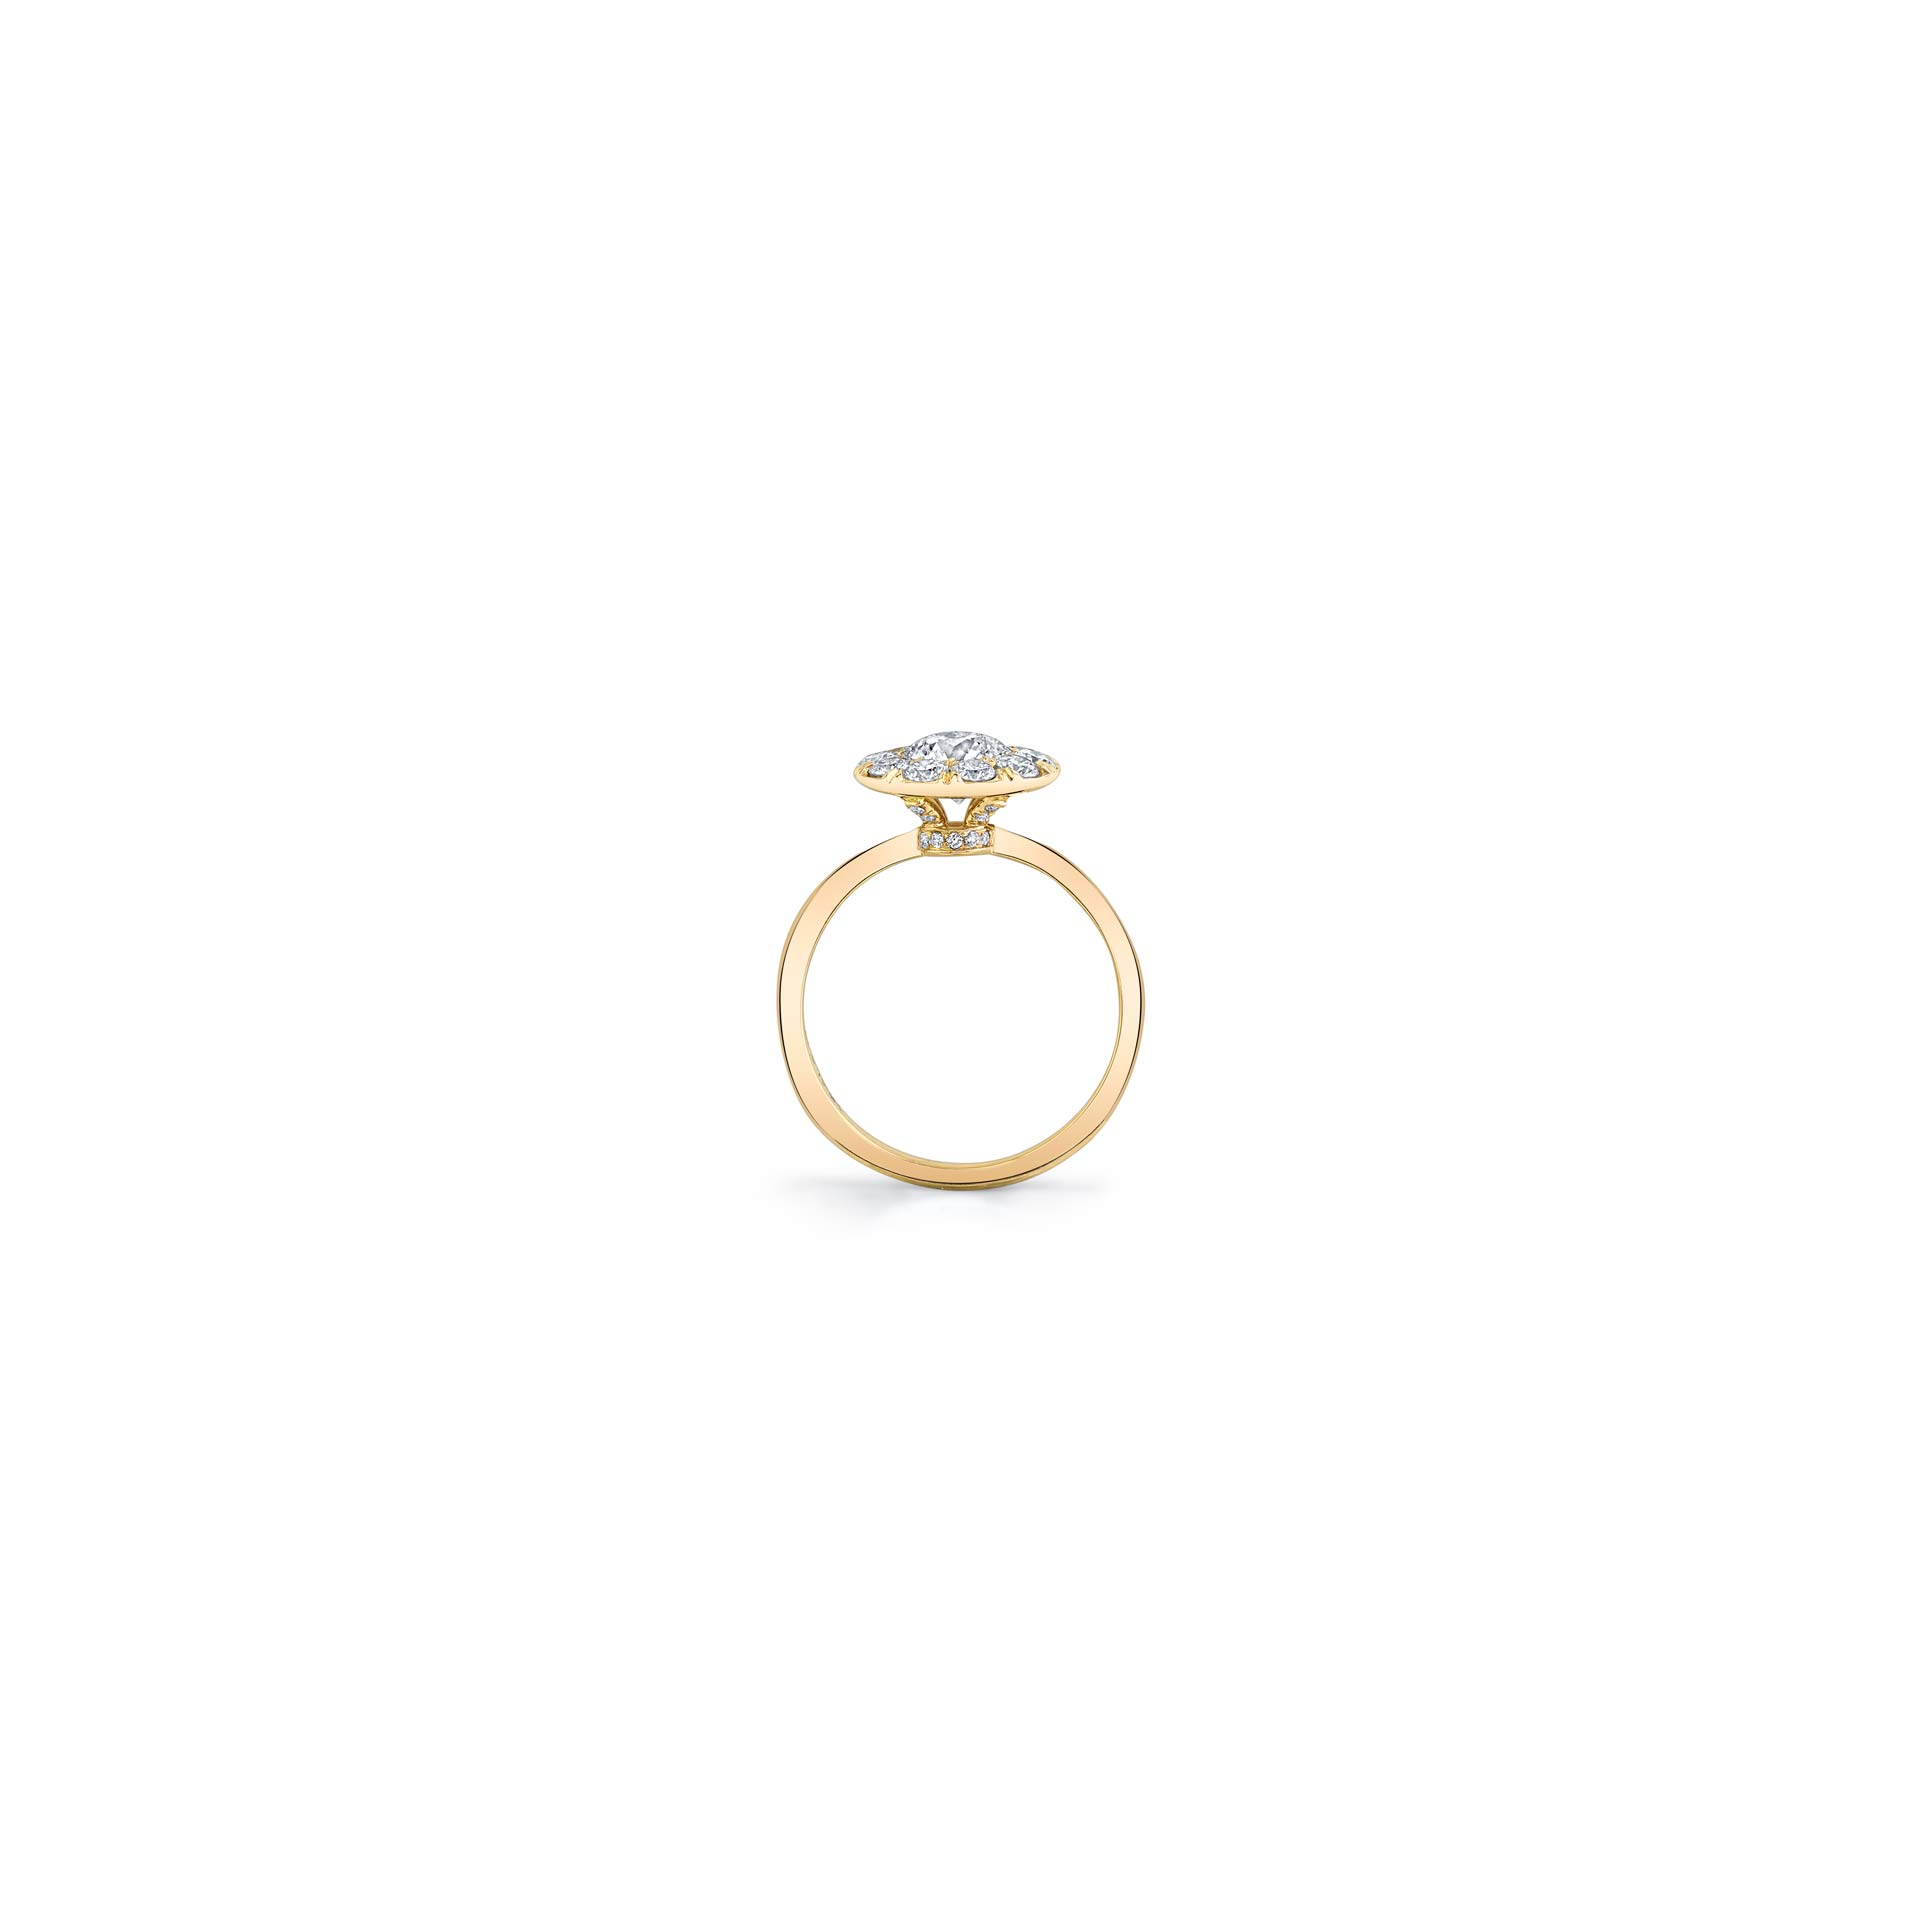 Colette Floating Round Brilliant Seamless Solitaire® Engagement Ring with a sold band in 18k Yellow Gold Standing View by Oui by Jean Dousset